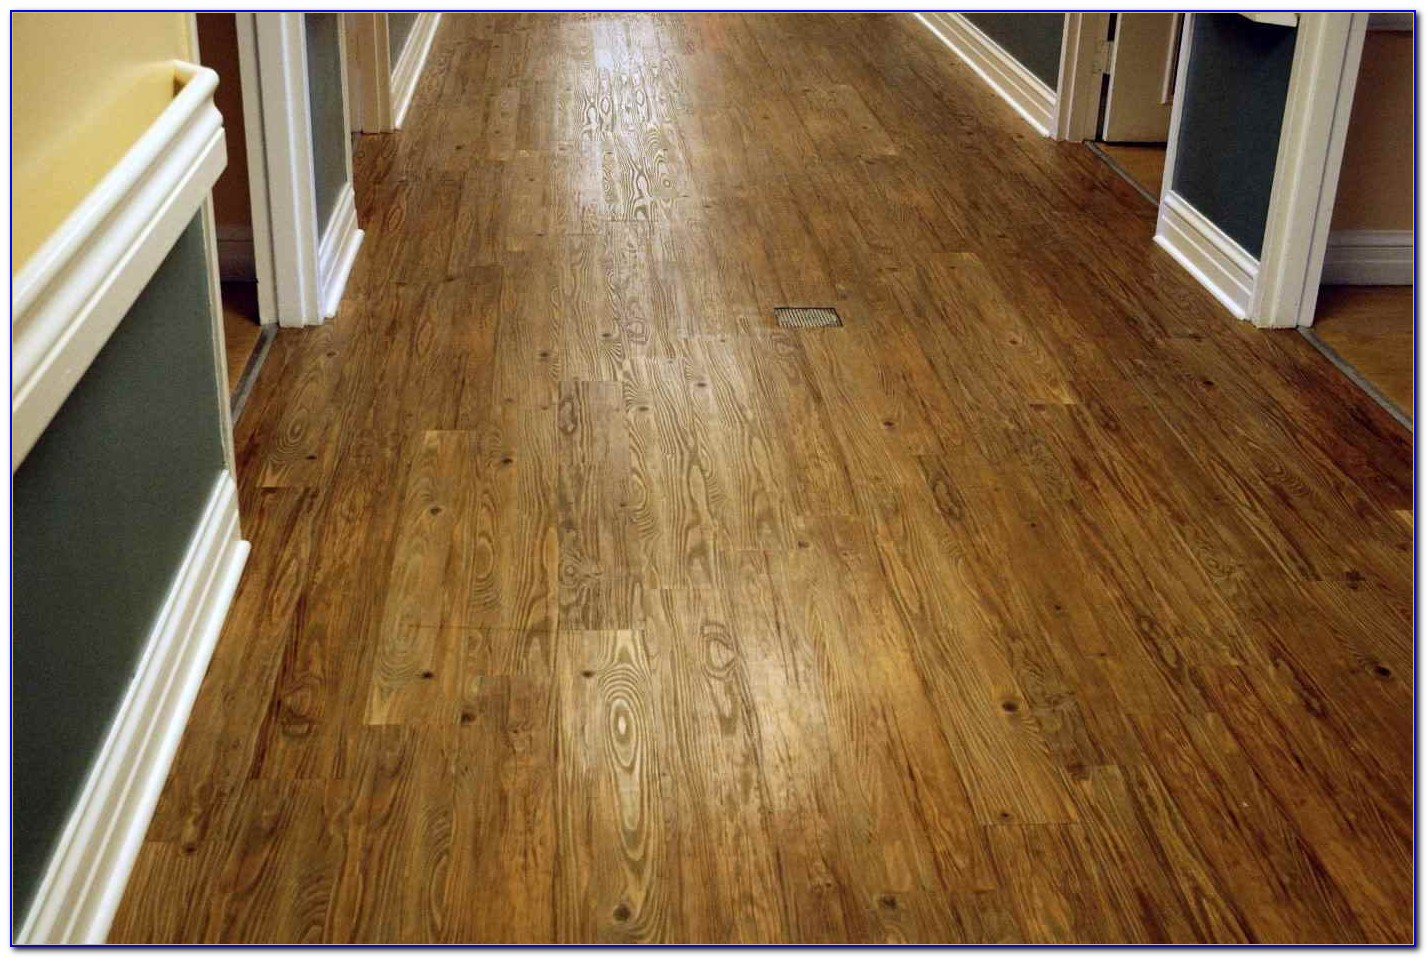 High quality laminate flooring vs hardwood flooring for Hardwood floors quality